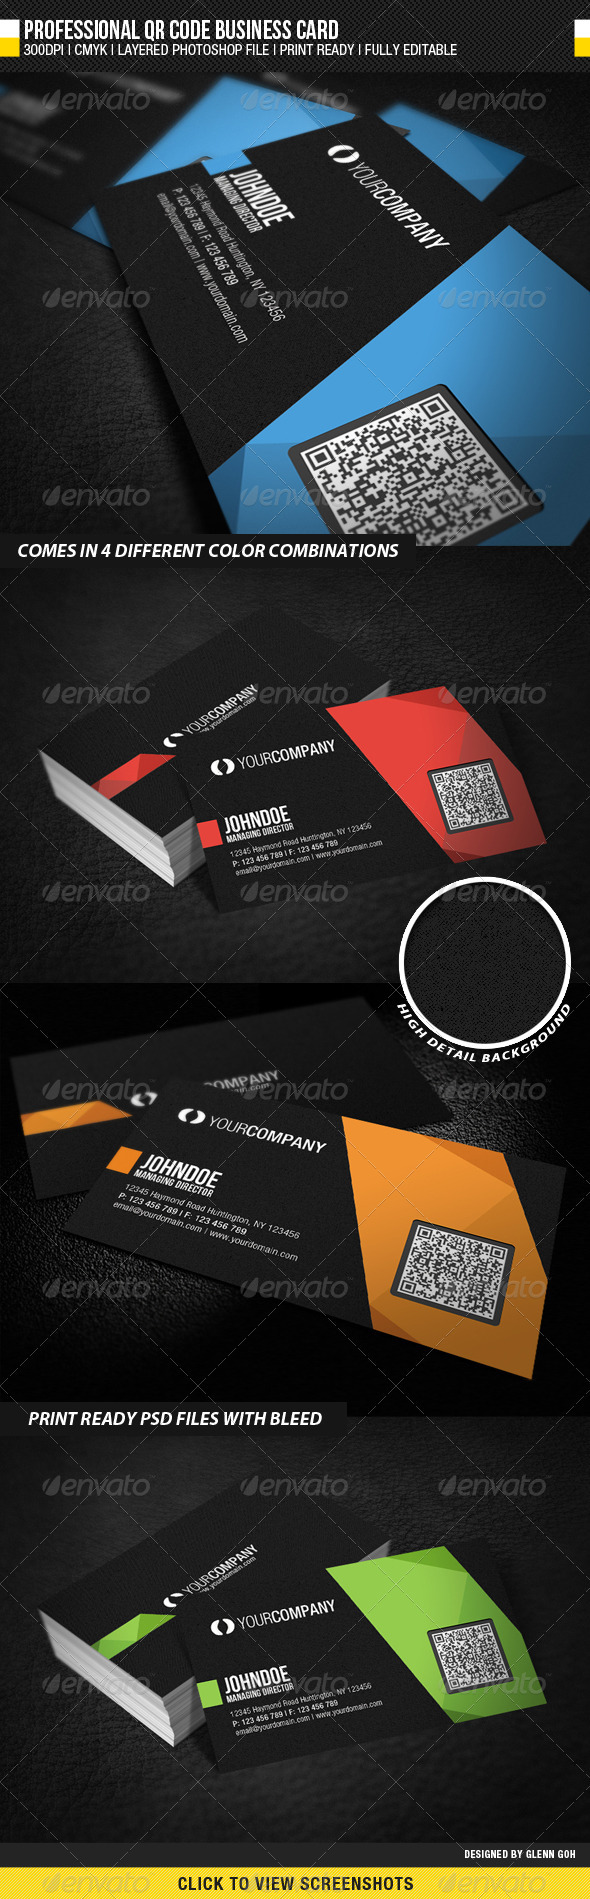 Qr code business card unlimitedgamers professional qr code business cardglenngoh graphicriver accmission Image collections